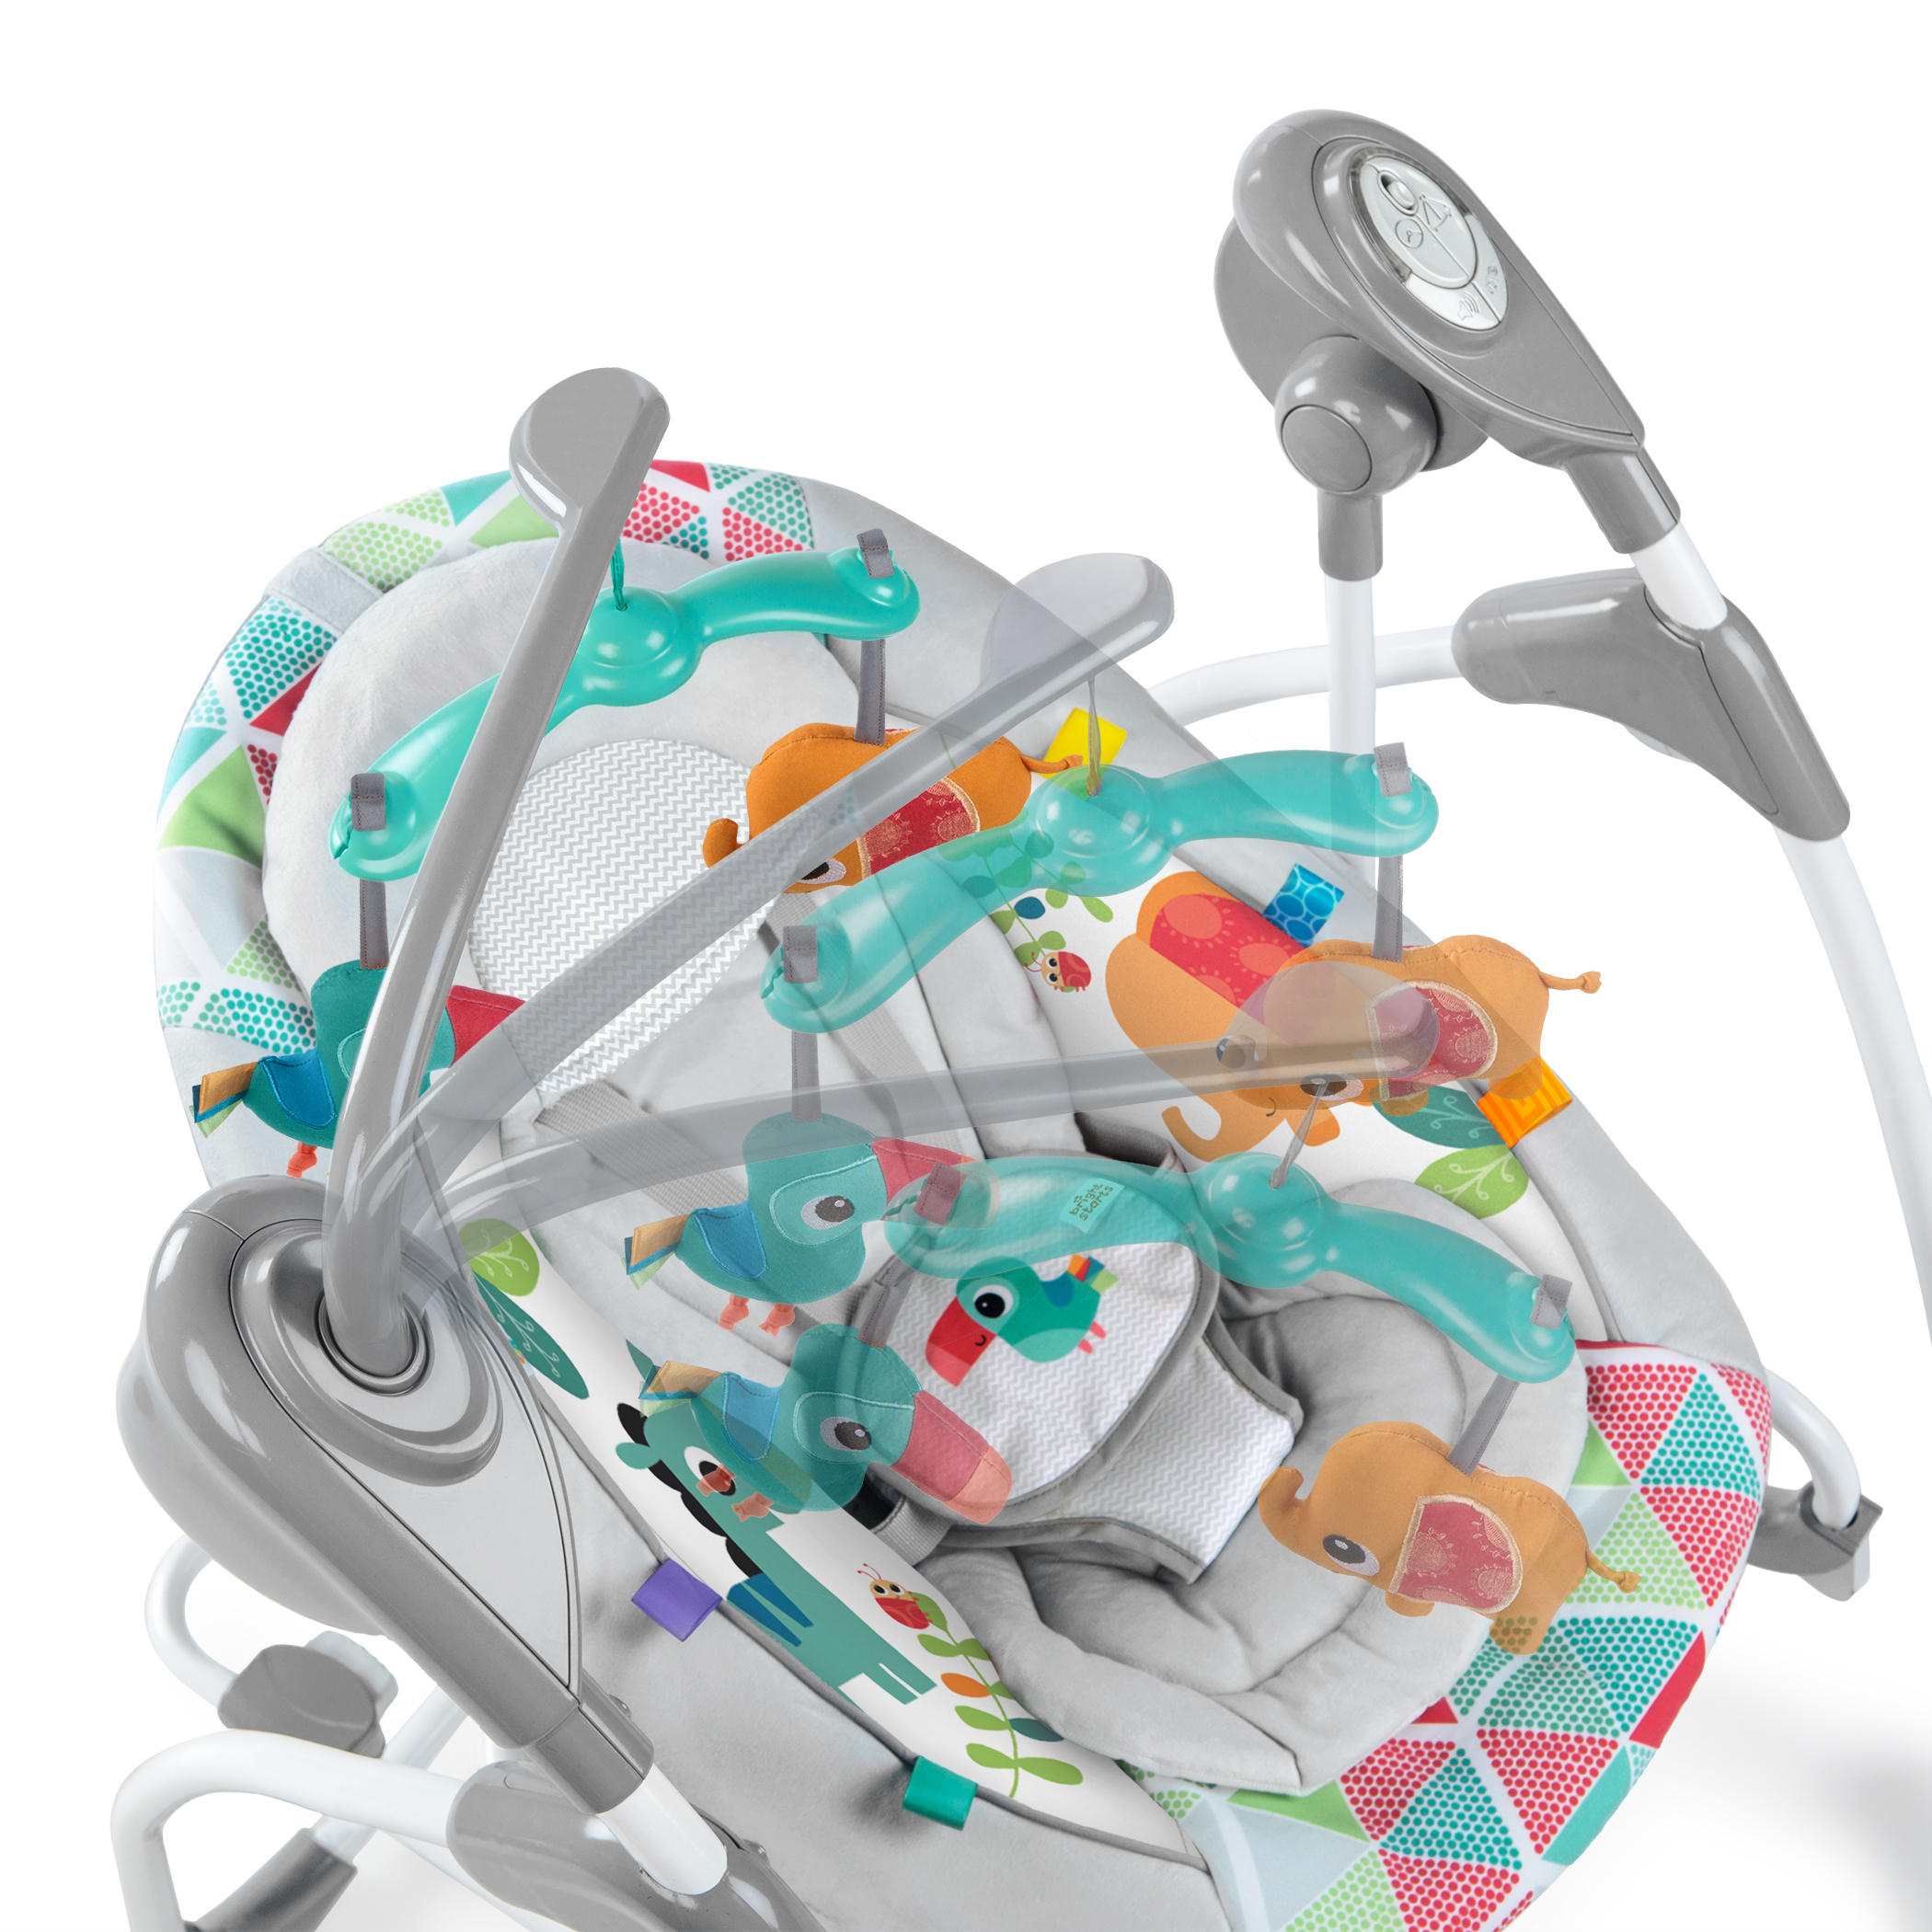 BrightStarts 2 in 1 Rock and Swing -Toucan Tango automatic